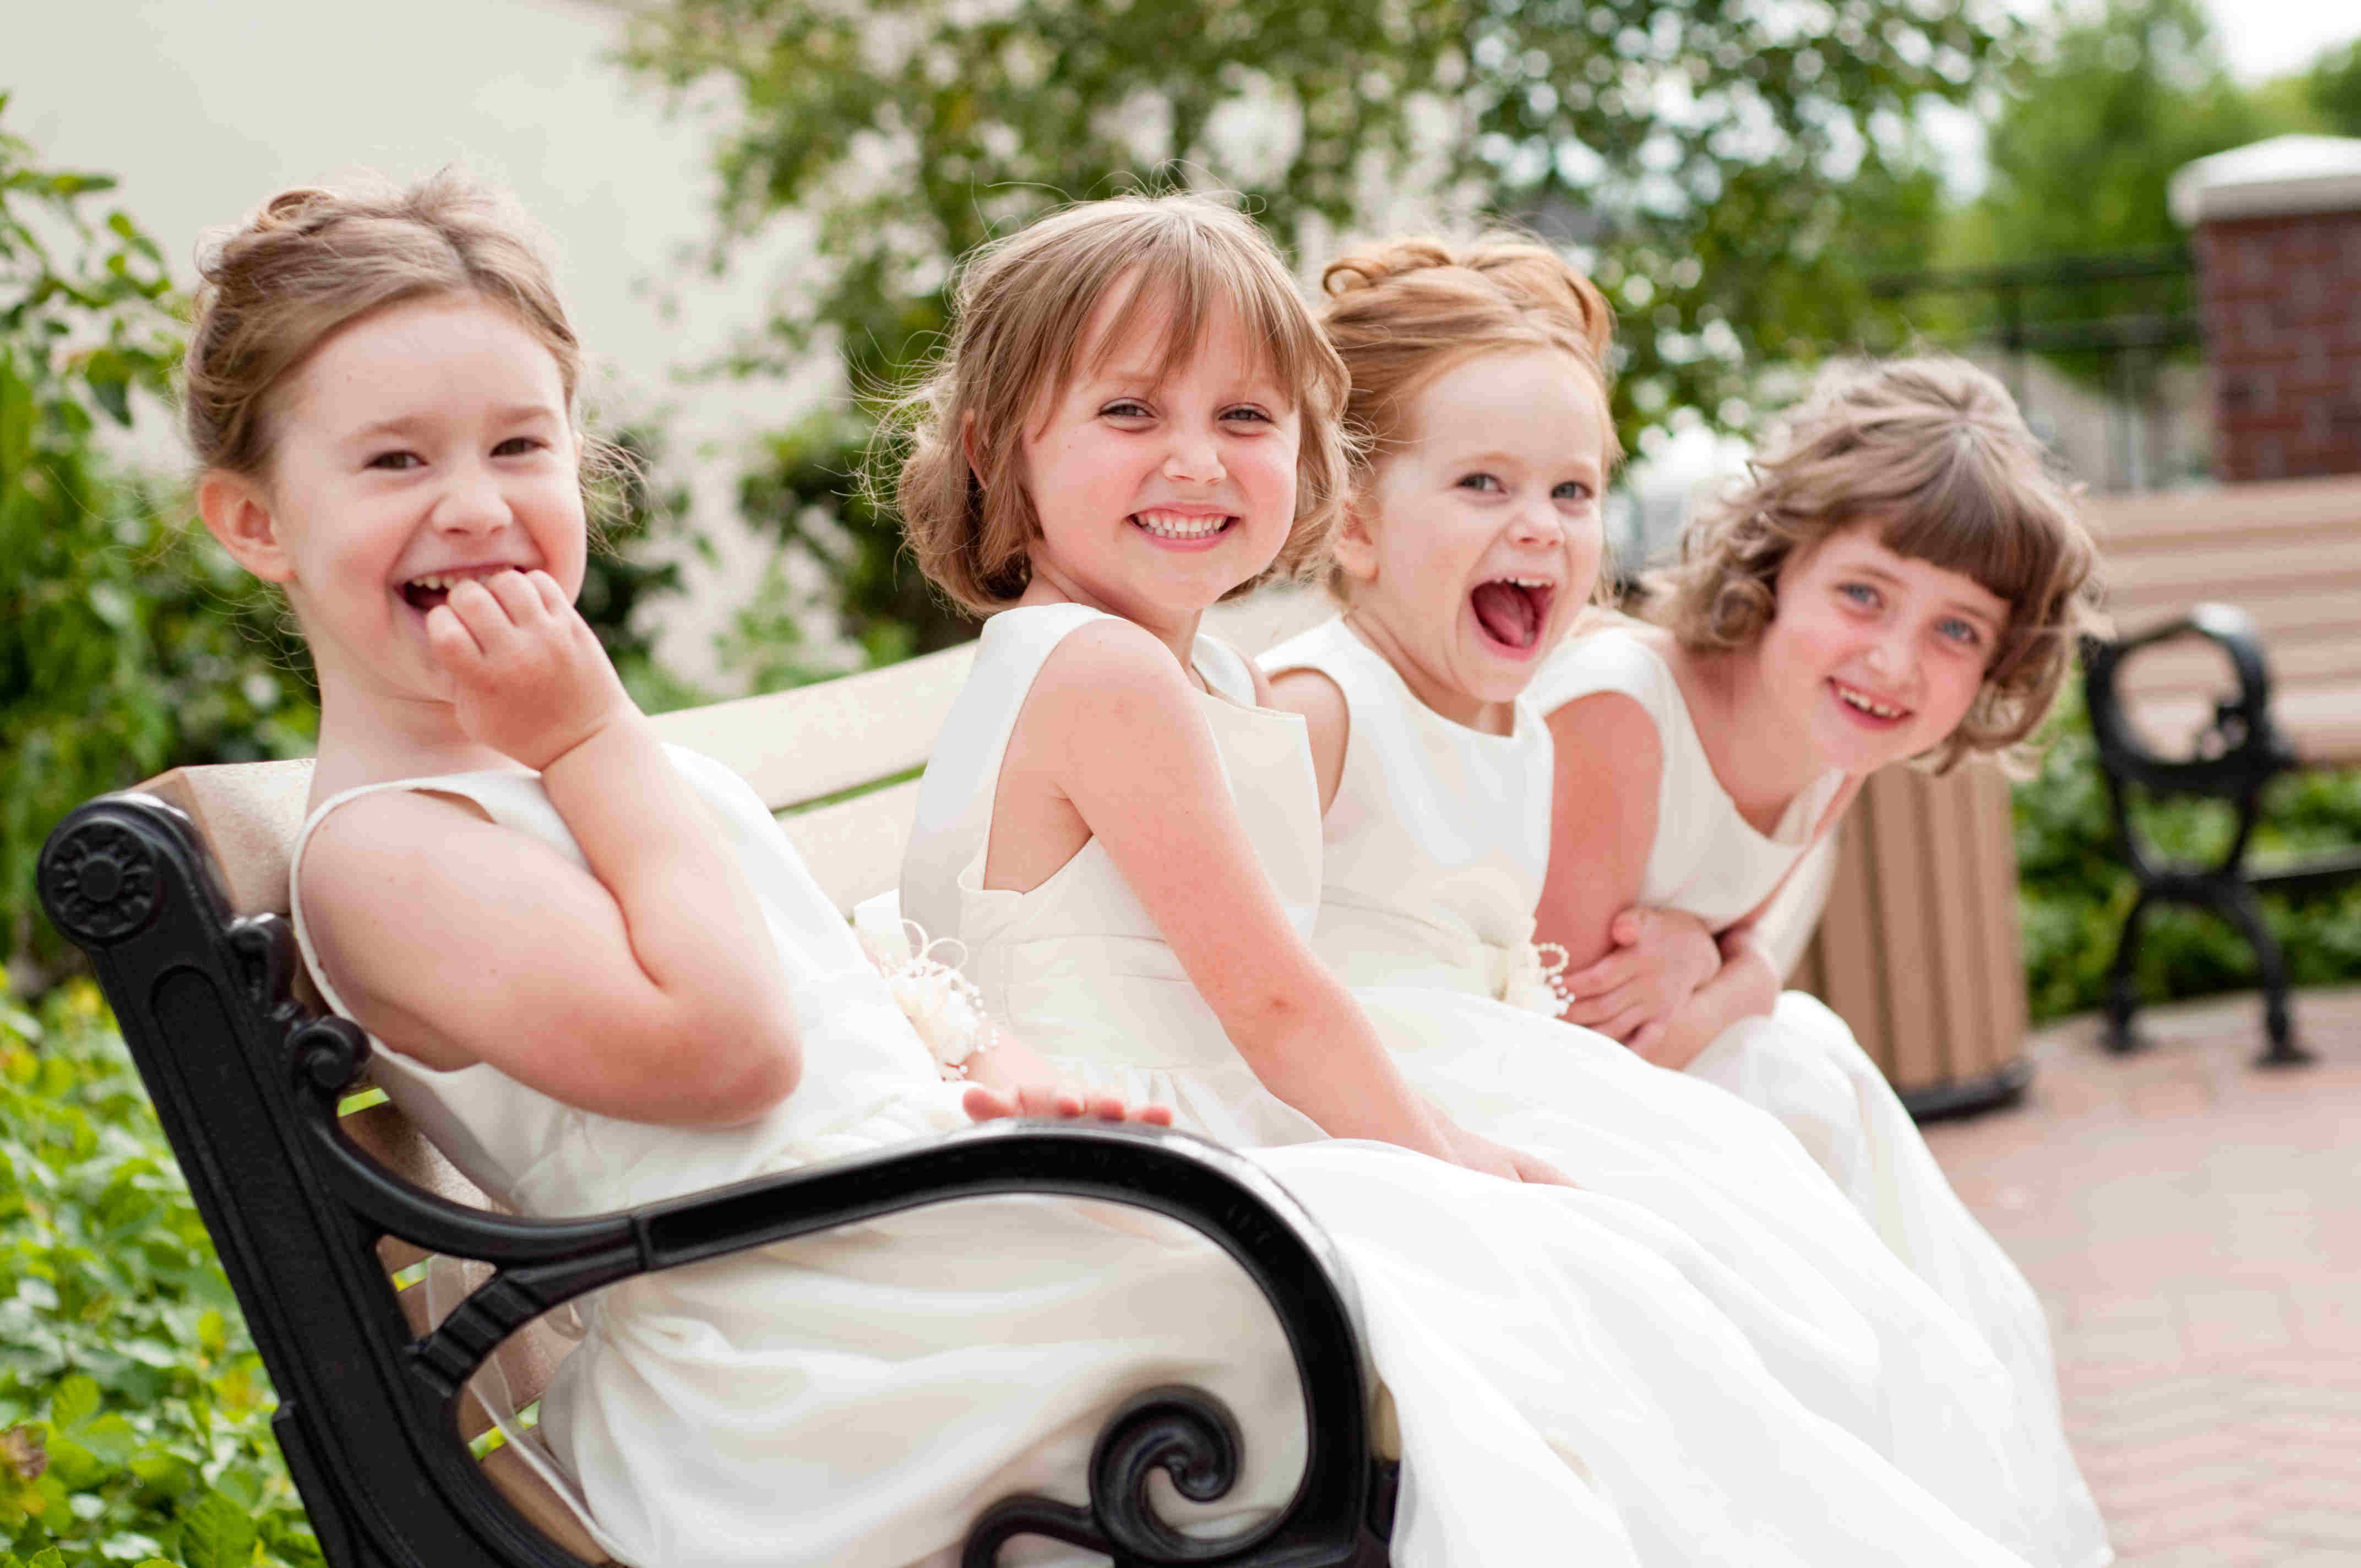 Color photo of four happy little flower girls laughing together while wearing formal dresses. They are sisters and cousins.